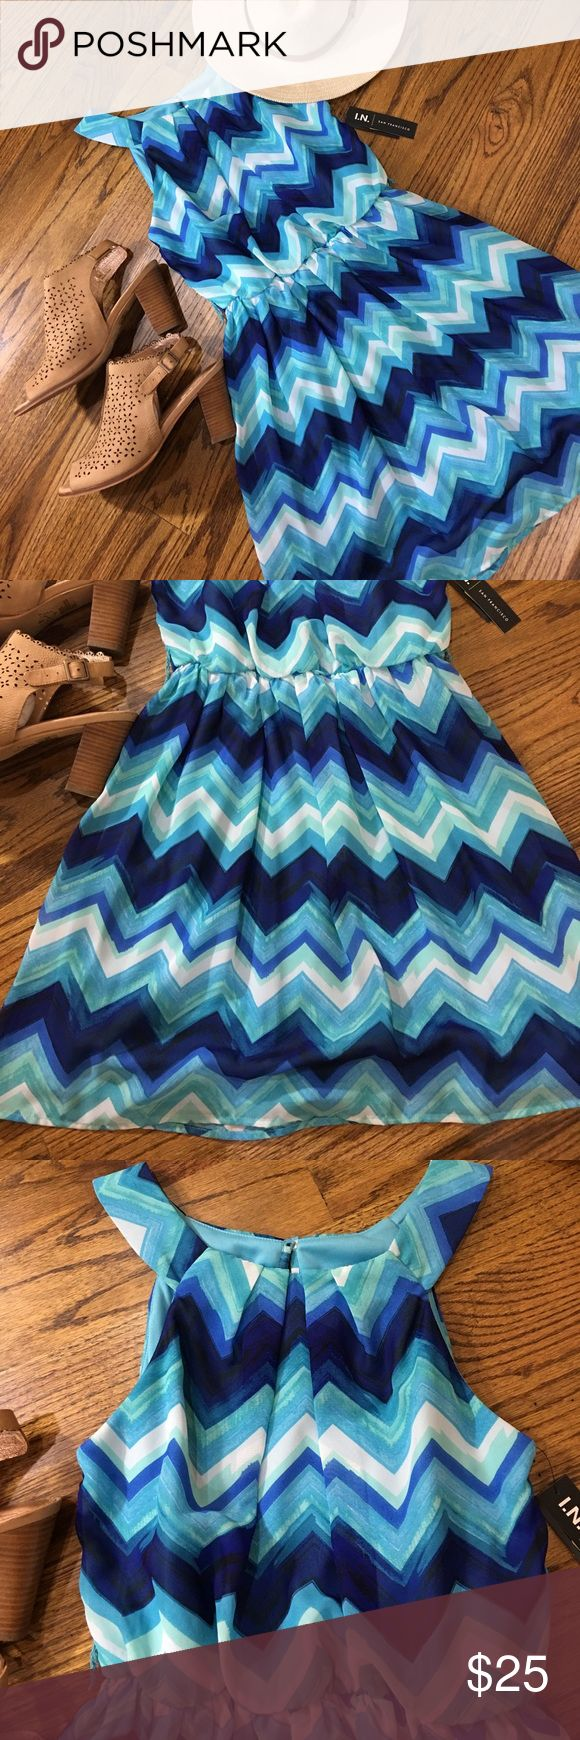 NWT BLUE CHEVRON DRESS SM Brand new blue Chevron dress. Elastic waist. No belt. I.N SAN FRANCISCO Dresses